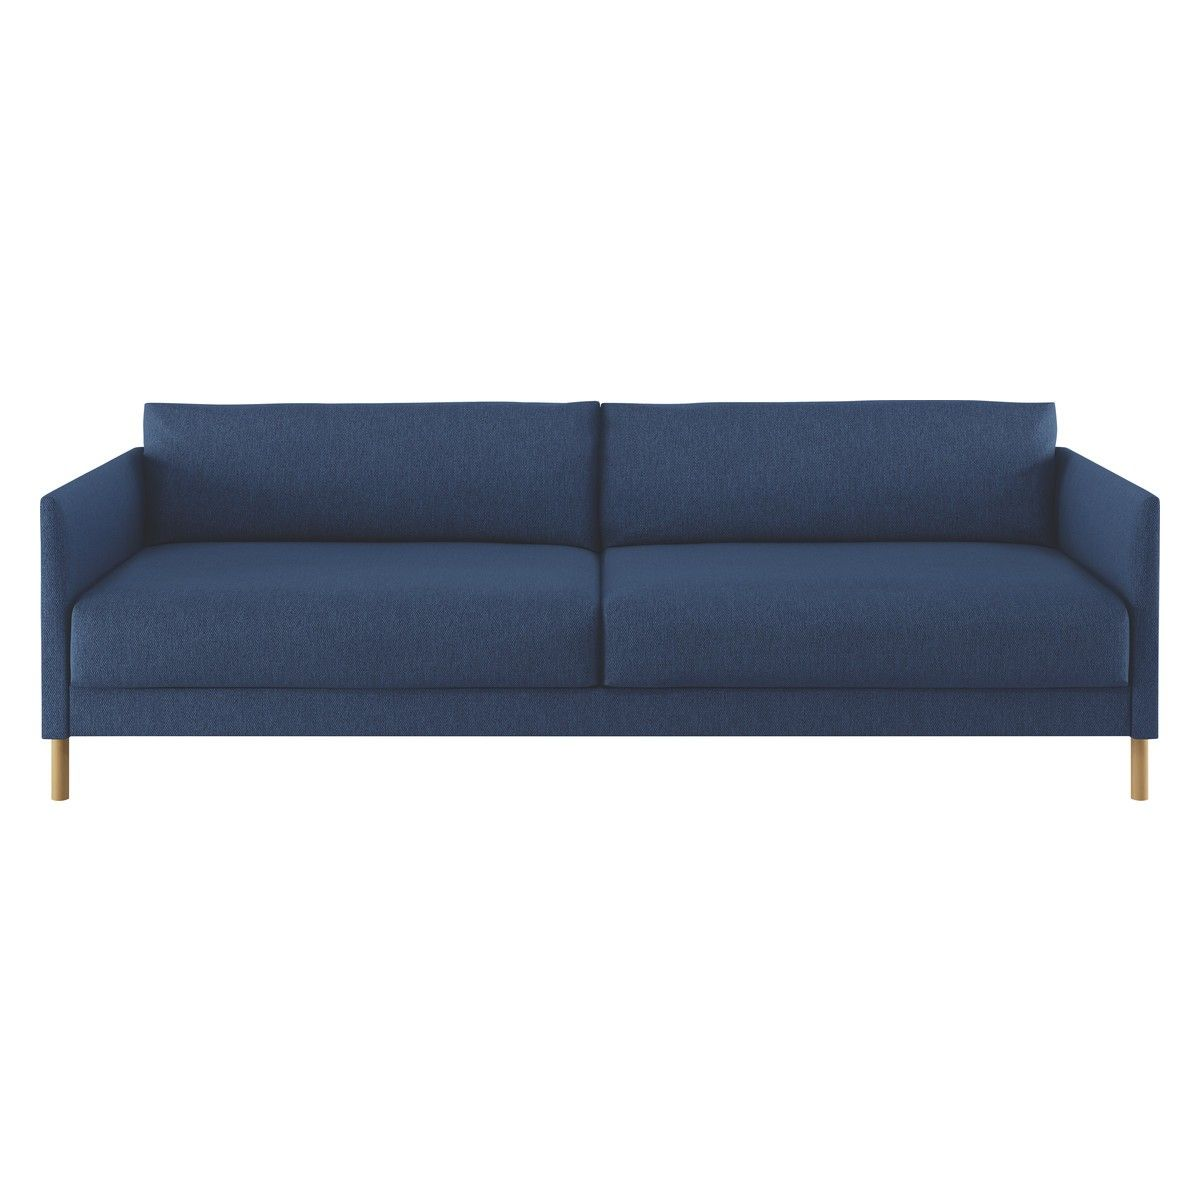 Fine Hyde Blue Fabric 3 Seater Sofa Bed Wooden Legs Buy Now At Caraccident5 Cool Chair Designs And Ideas Caraccident5Info